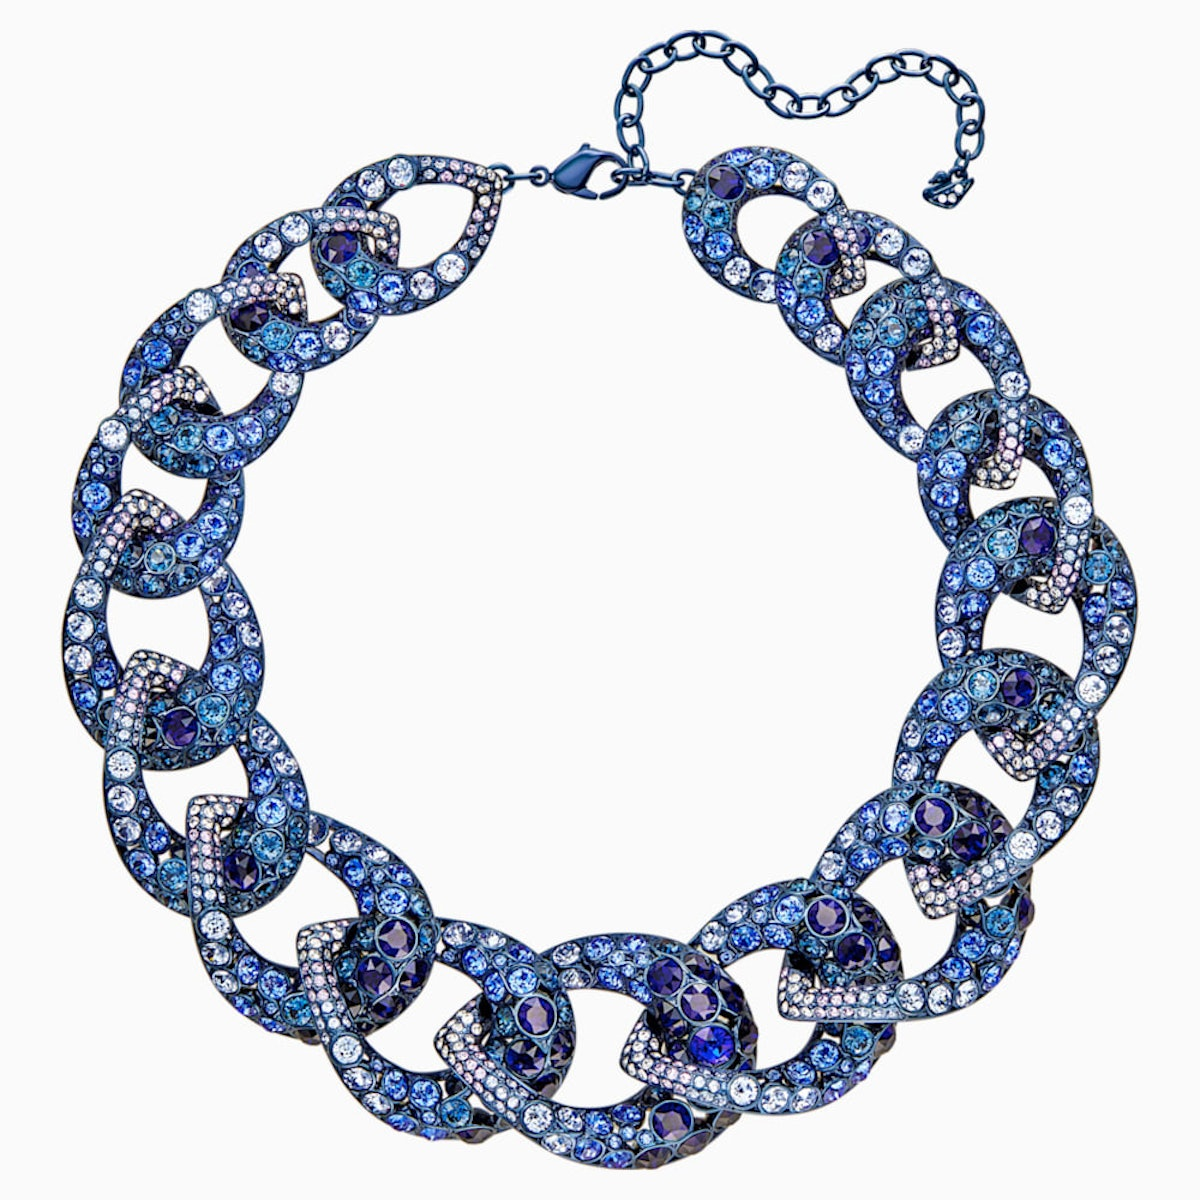 TABLOID NECKLACE, MULTI-COLORED, BLUE PVD COATING